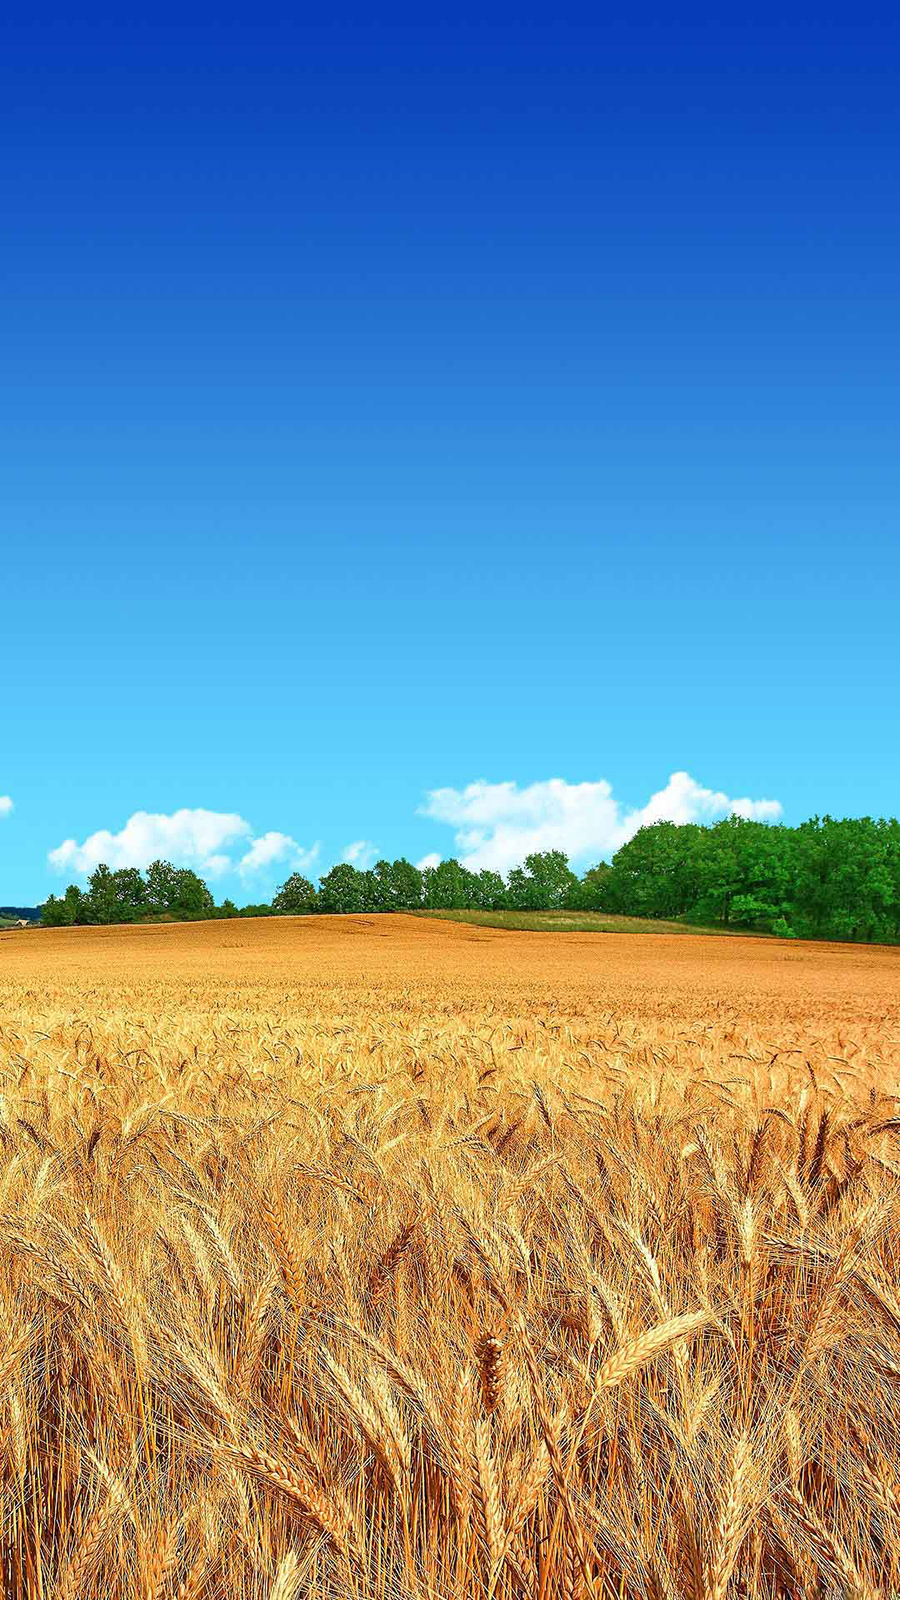 Golden Wheat Field Blue Sky Forest Android Wallpaper